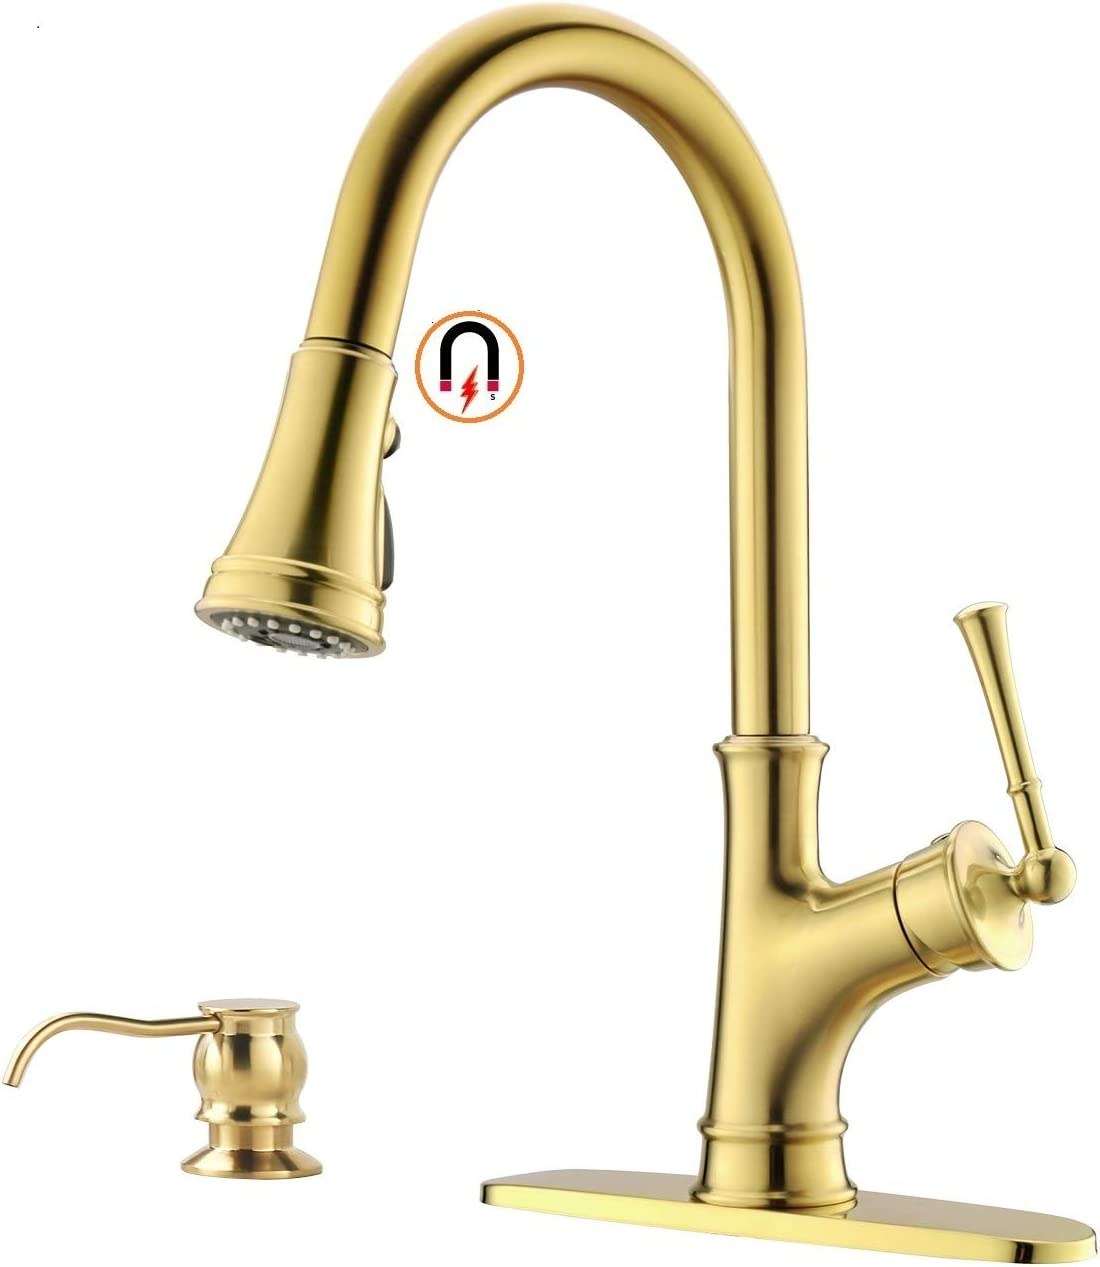 Gold Kitchen Faucet with Pull-Down Magnetic Docking Sprayer,